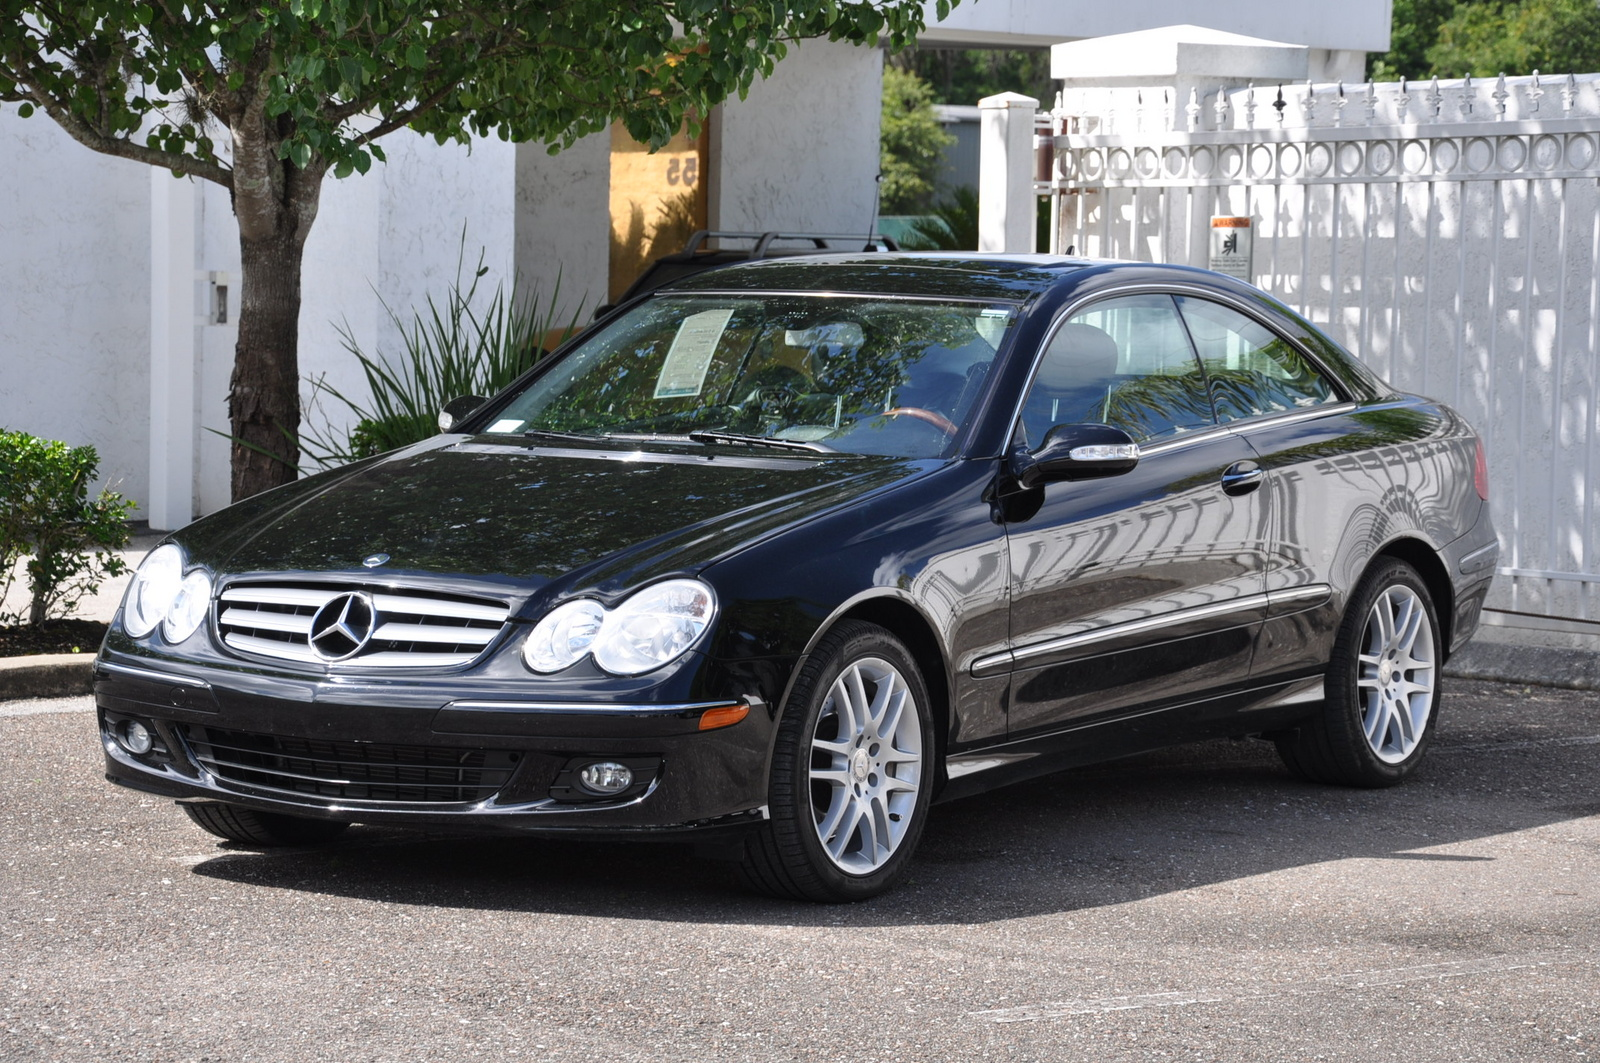 2008 mercedes benz clk class pictures cargurus. Black Bedroom Furniture Sets. Home Design Ideas